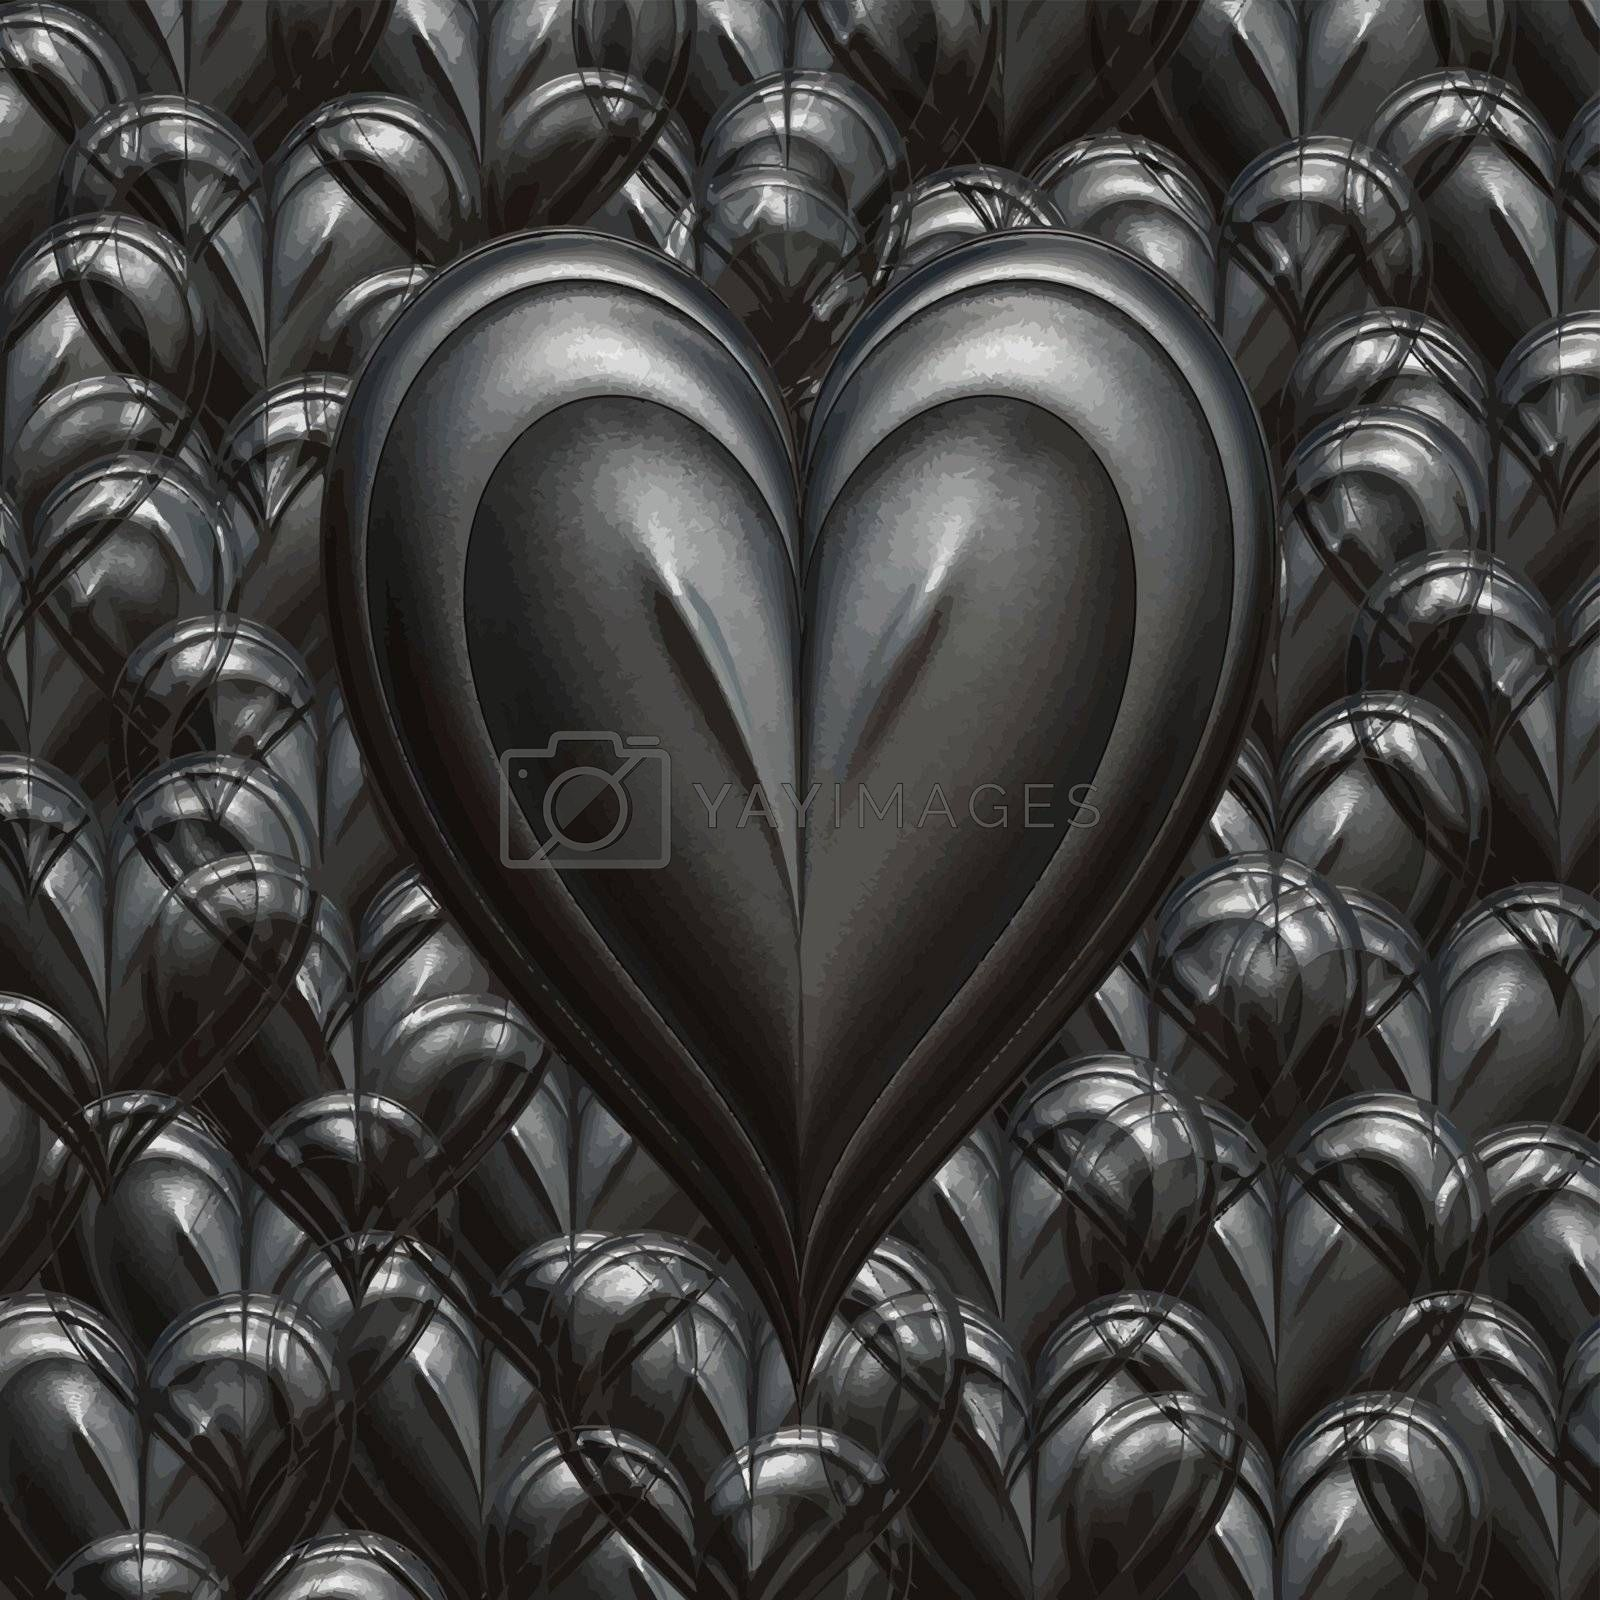 cast iron love heart to show how strong love ca be